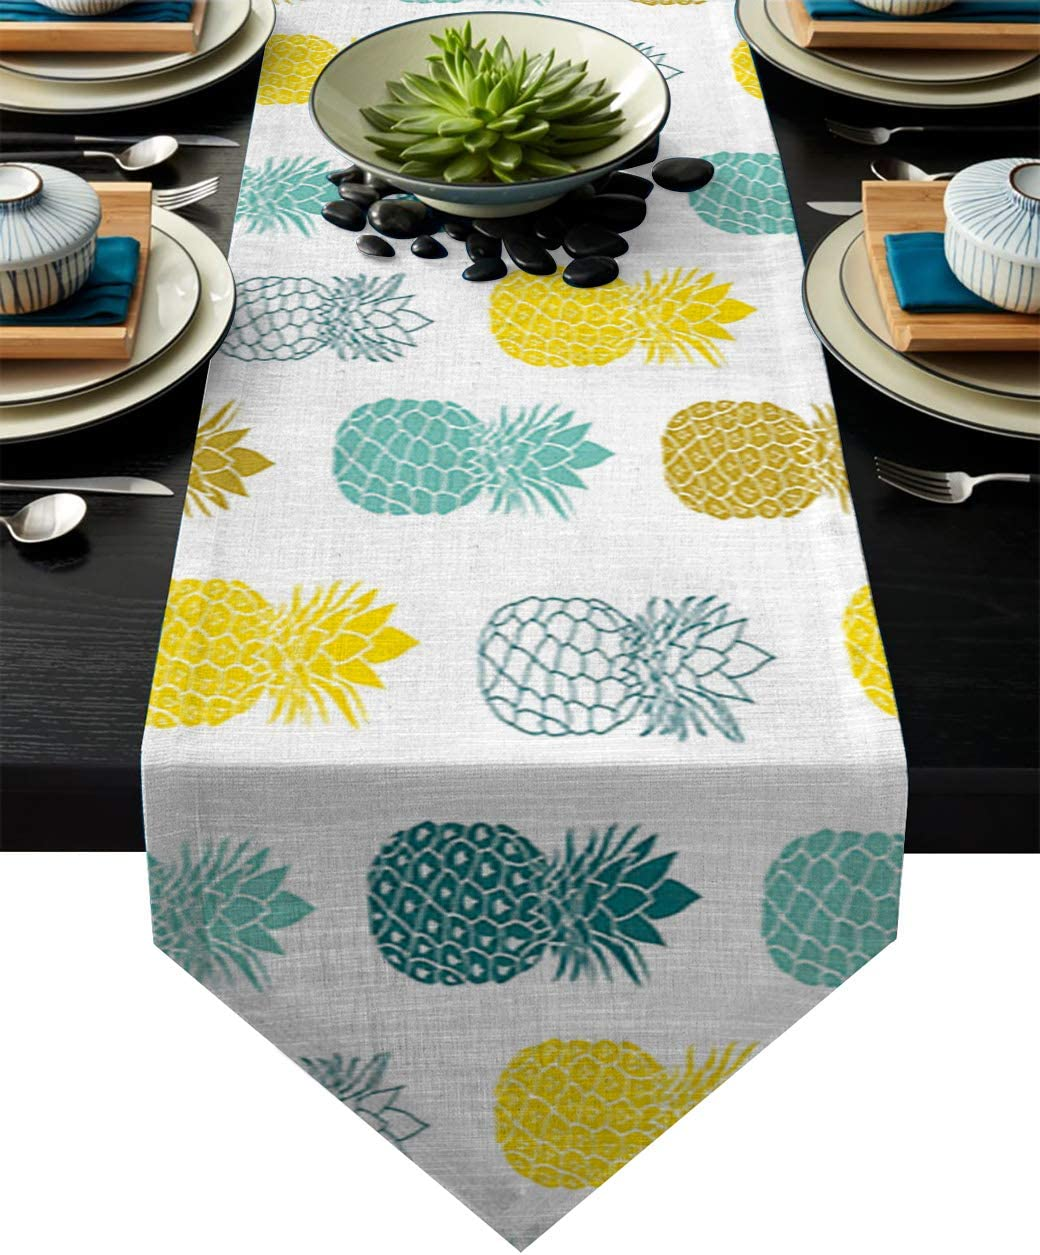 BetterDay Cotton Linen Table Runner Colorful Pineapple Design 18x72 Inch Burlap Table Runners for Party Wedding Dining Farmhouse Outdoor Picnics Table Top Decor